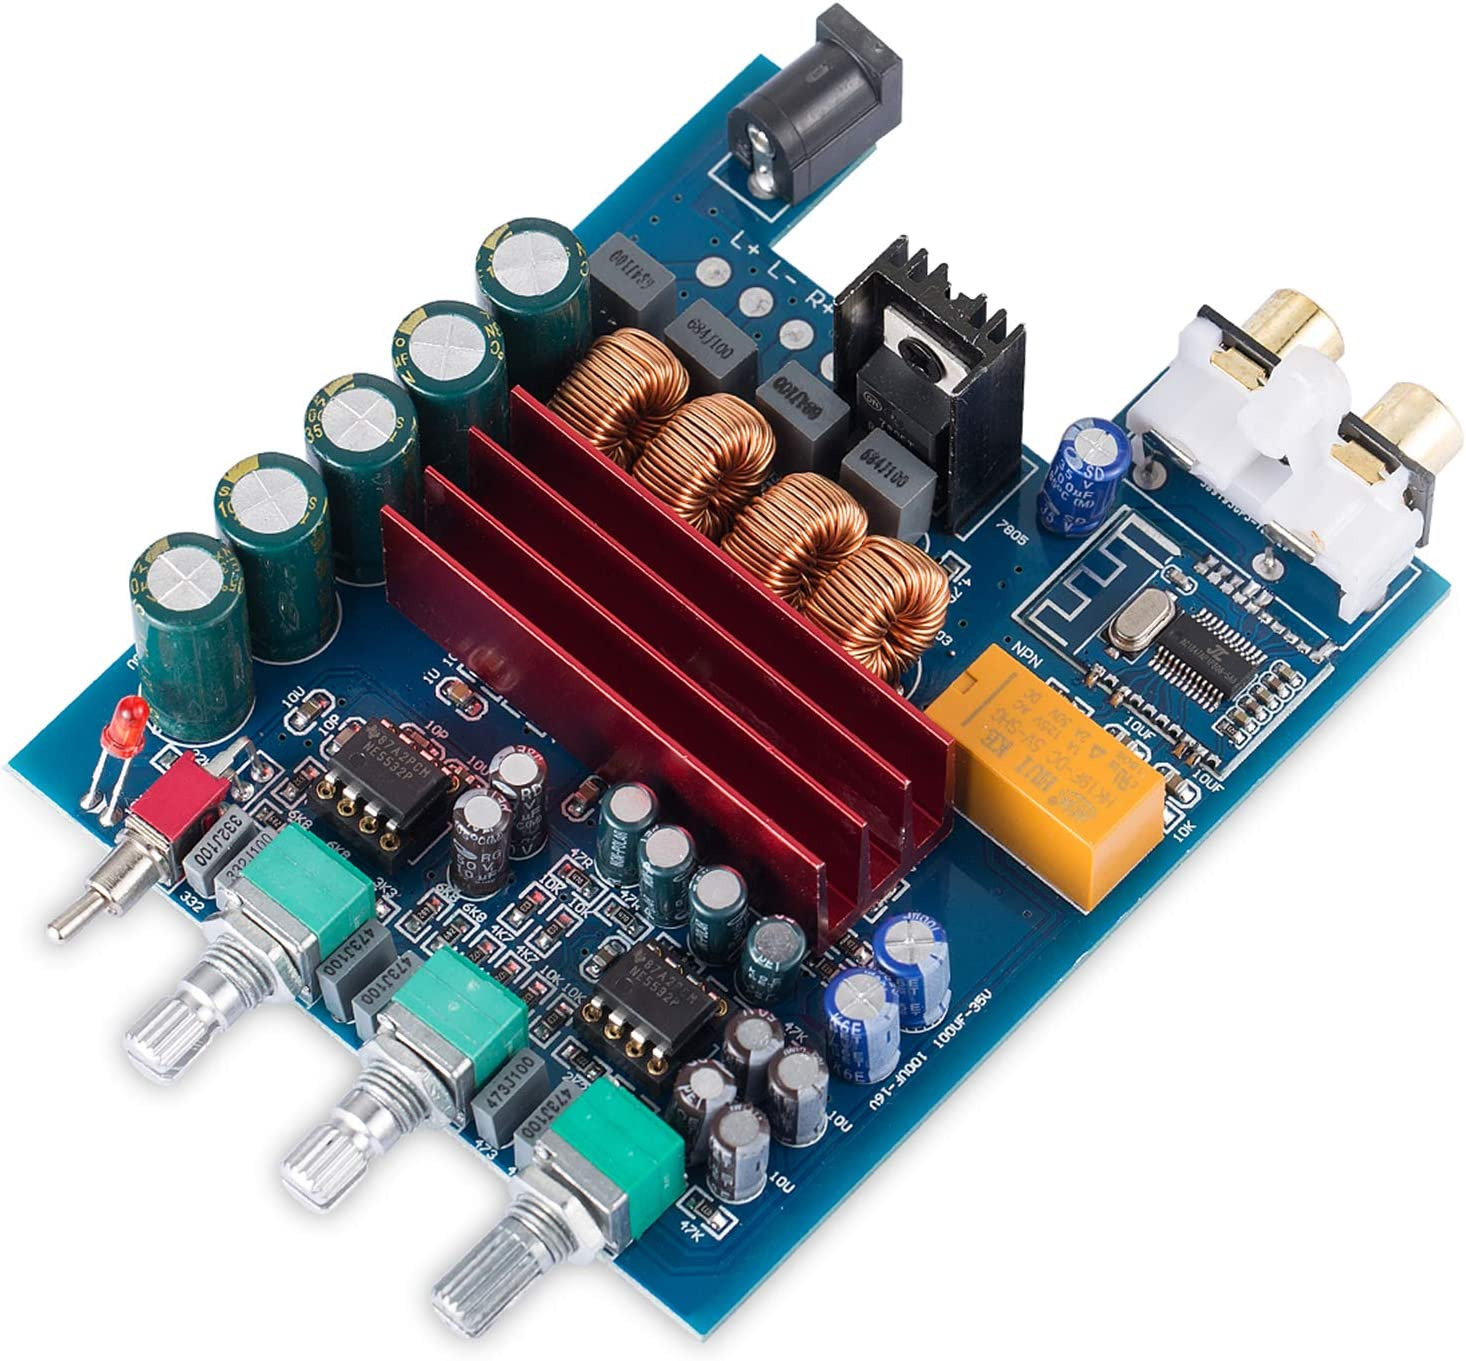 Nobsound 200W Bluetooth 4.2 Power Amplifier Board 2 Channel Digital Amp TPA3116D2 HiFi Stereo Audio Receiver Home Speaker Treble Bass Control